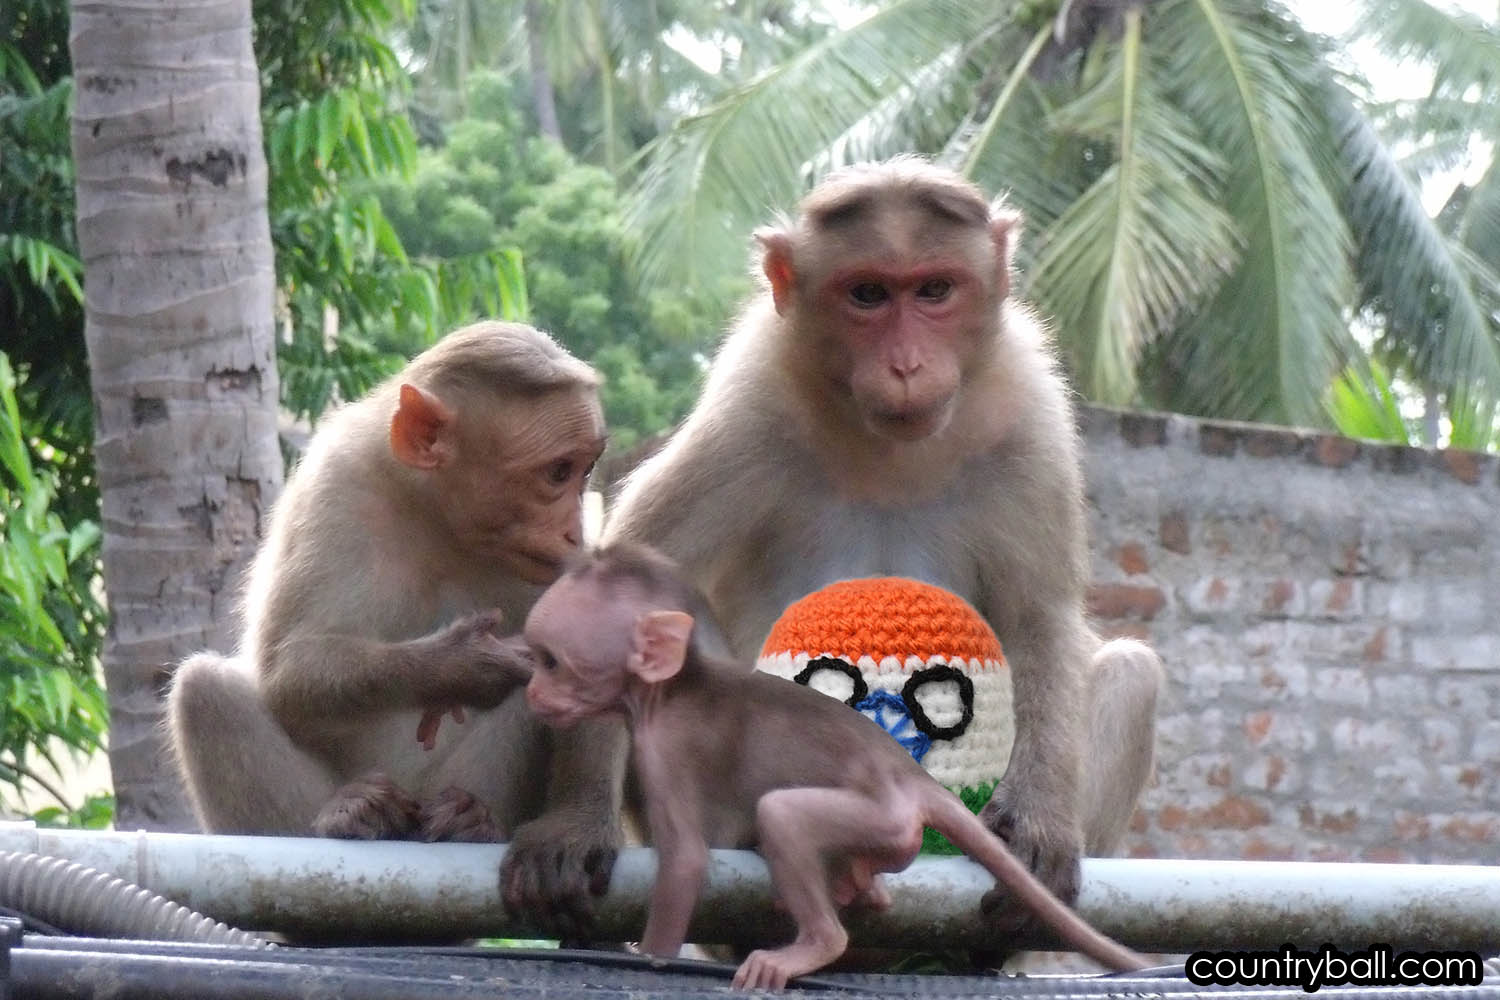 Monkeys stole Indiaball